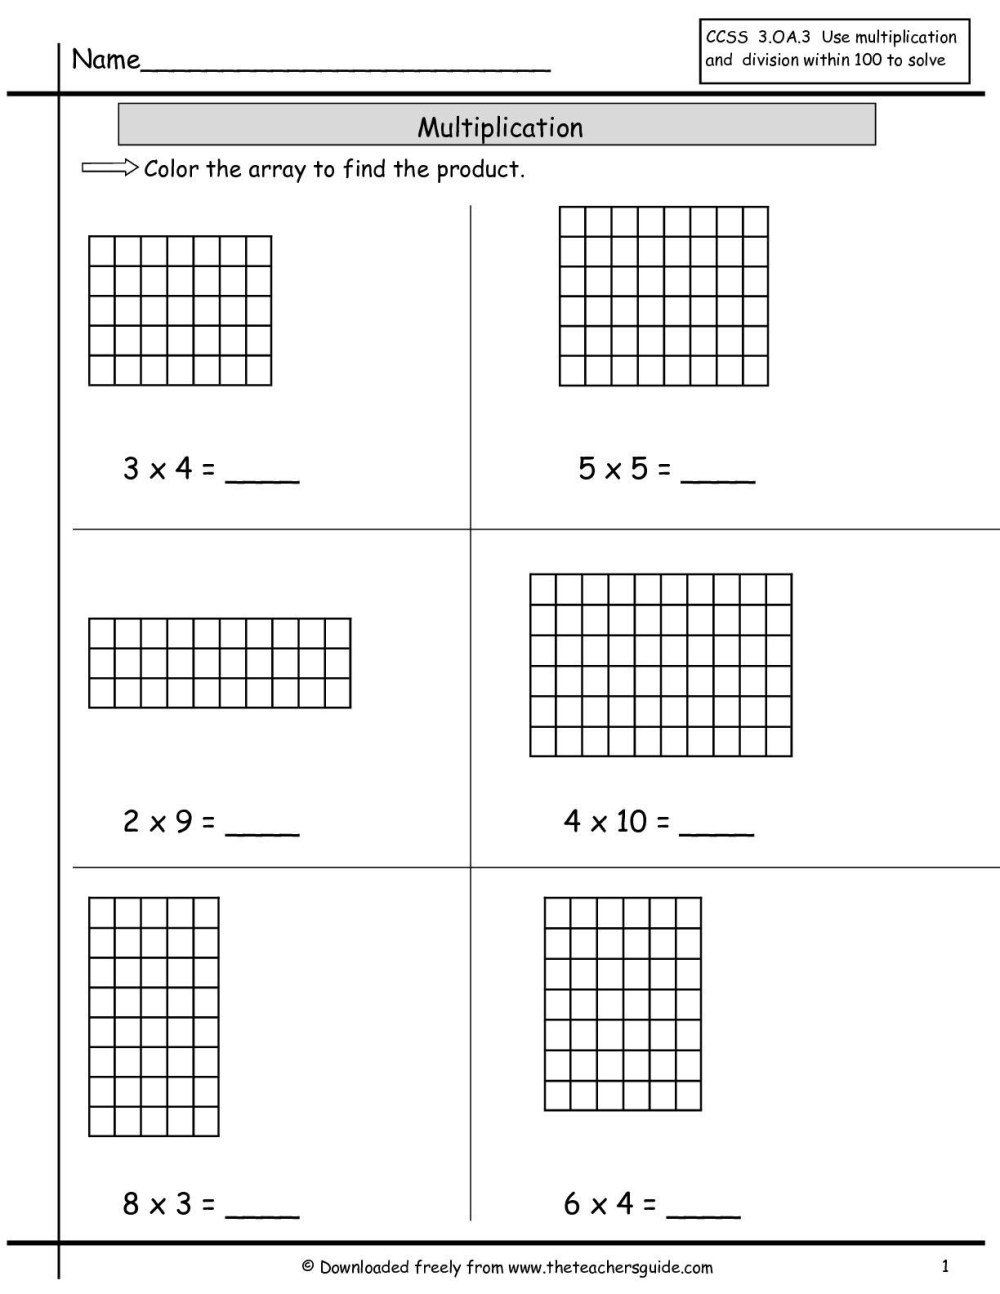 medium resolution of Multplication Arrays Worksheets   Printable Worksheets and Activities for  Teachers